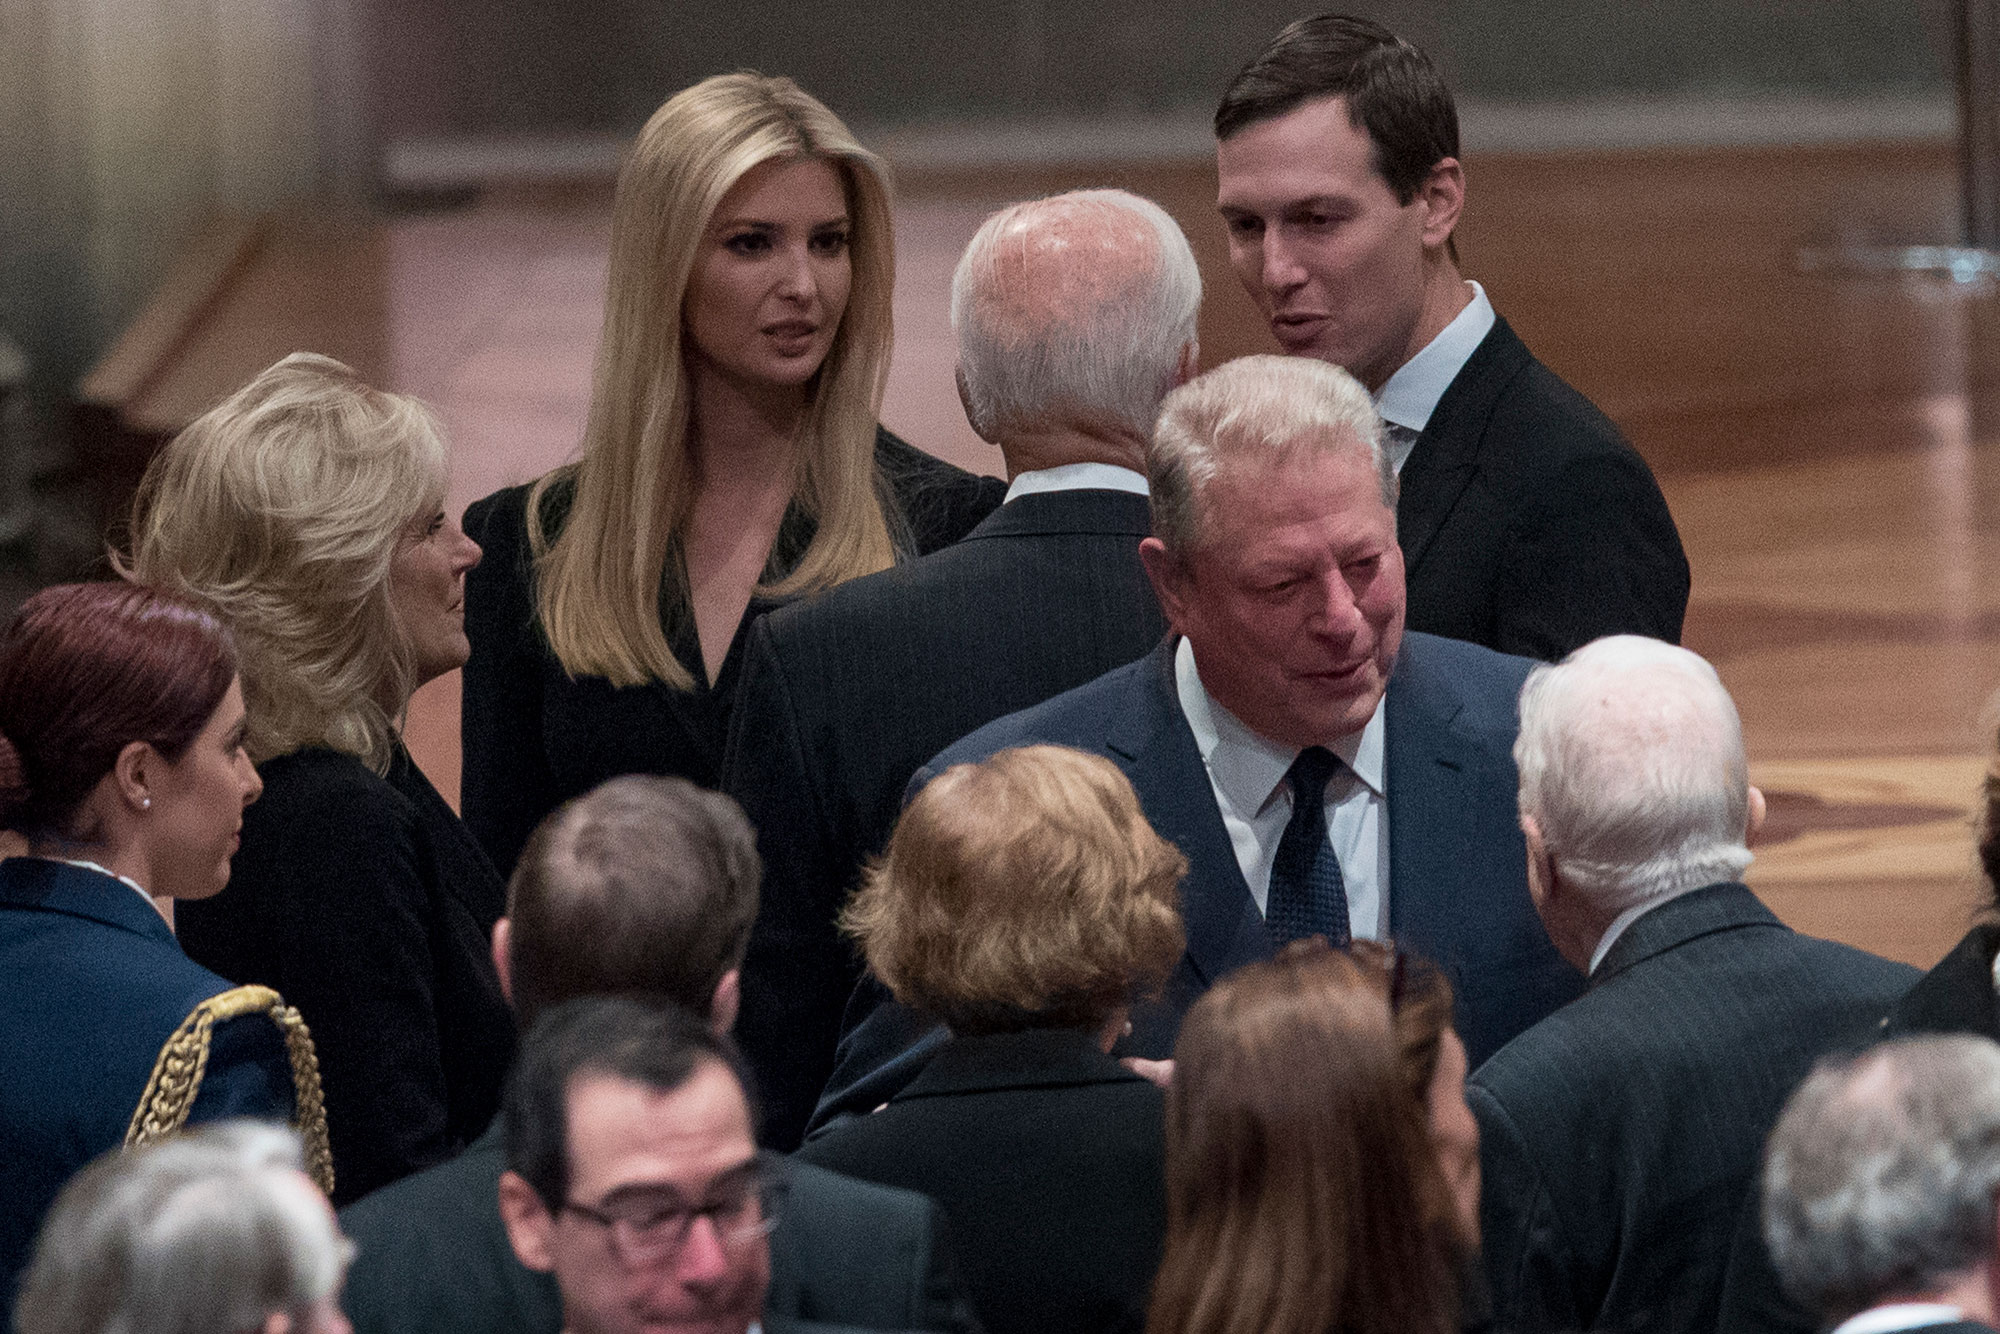 george bush funeral - The couple spoke to Jill and Joe as they entered the Cathedral.